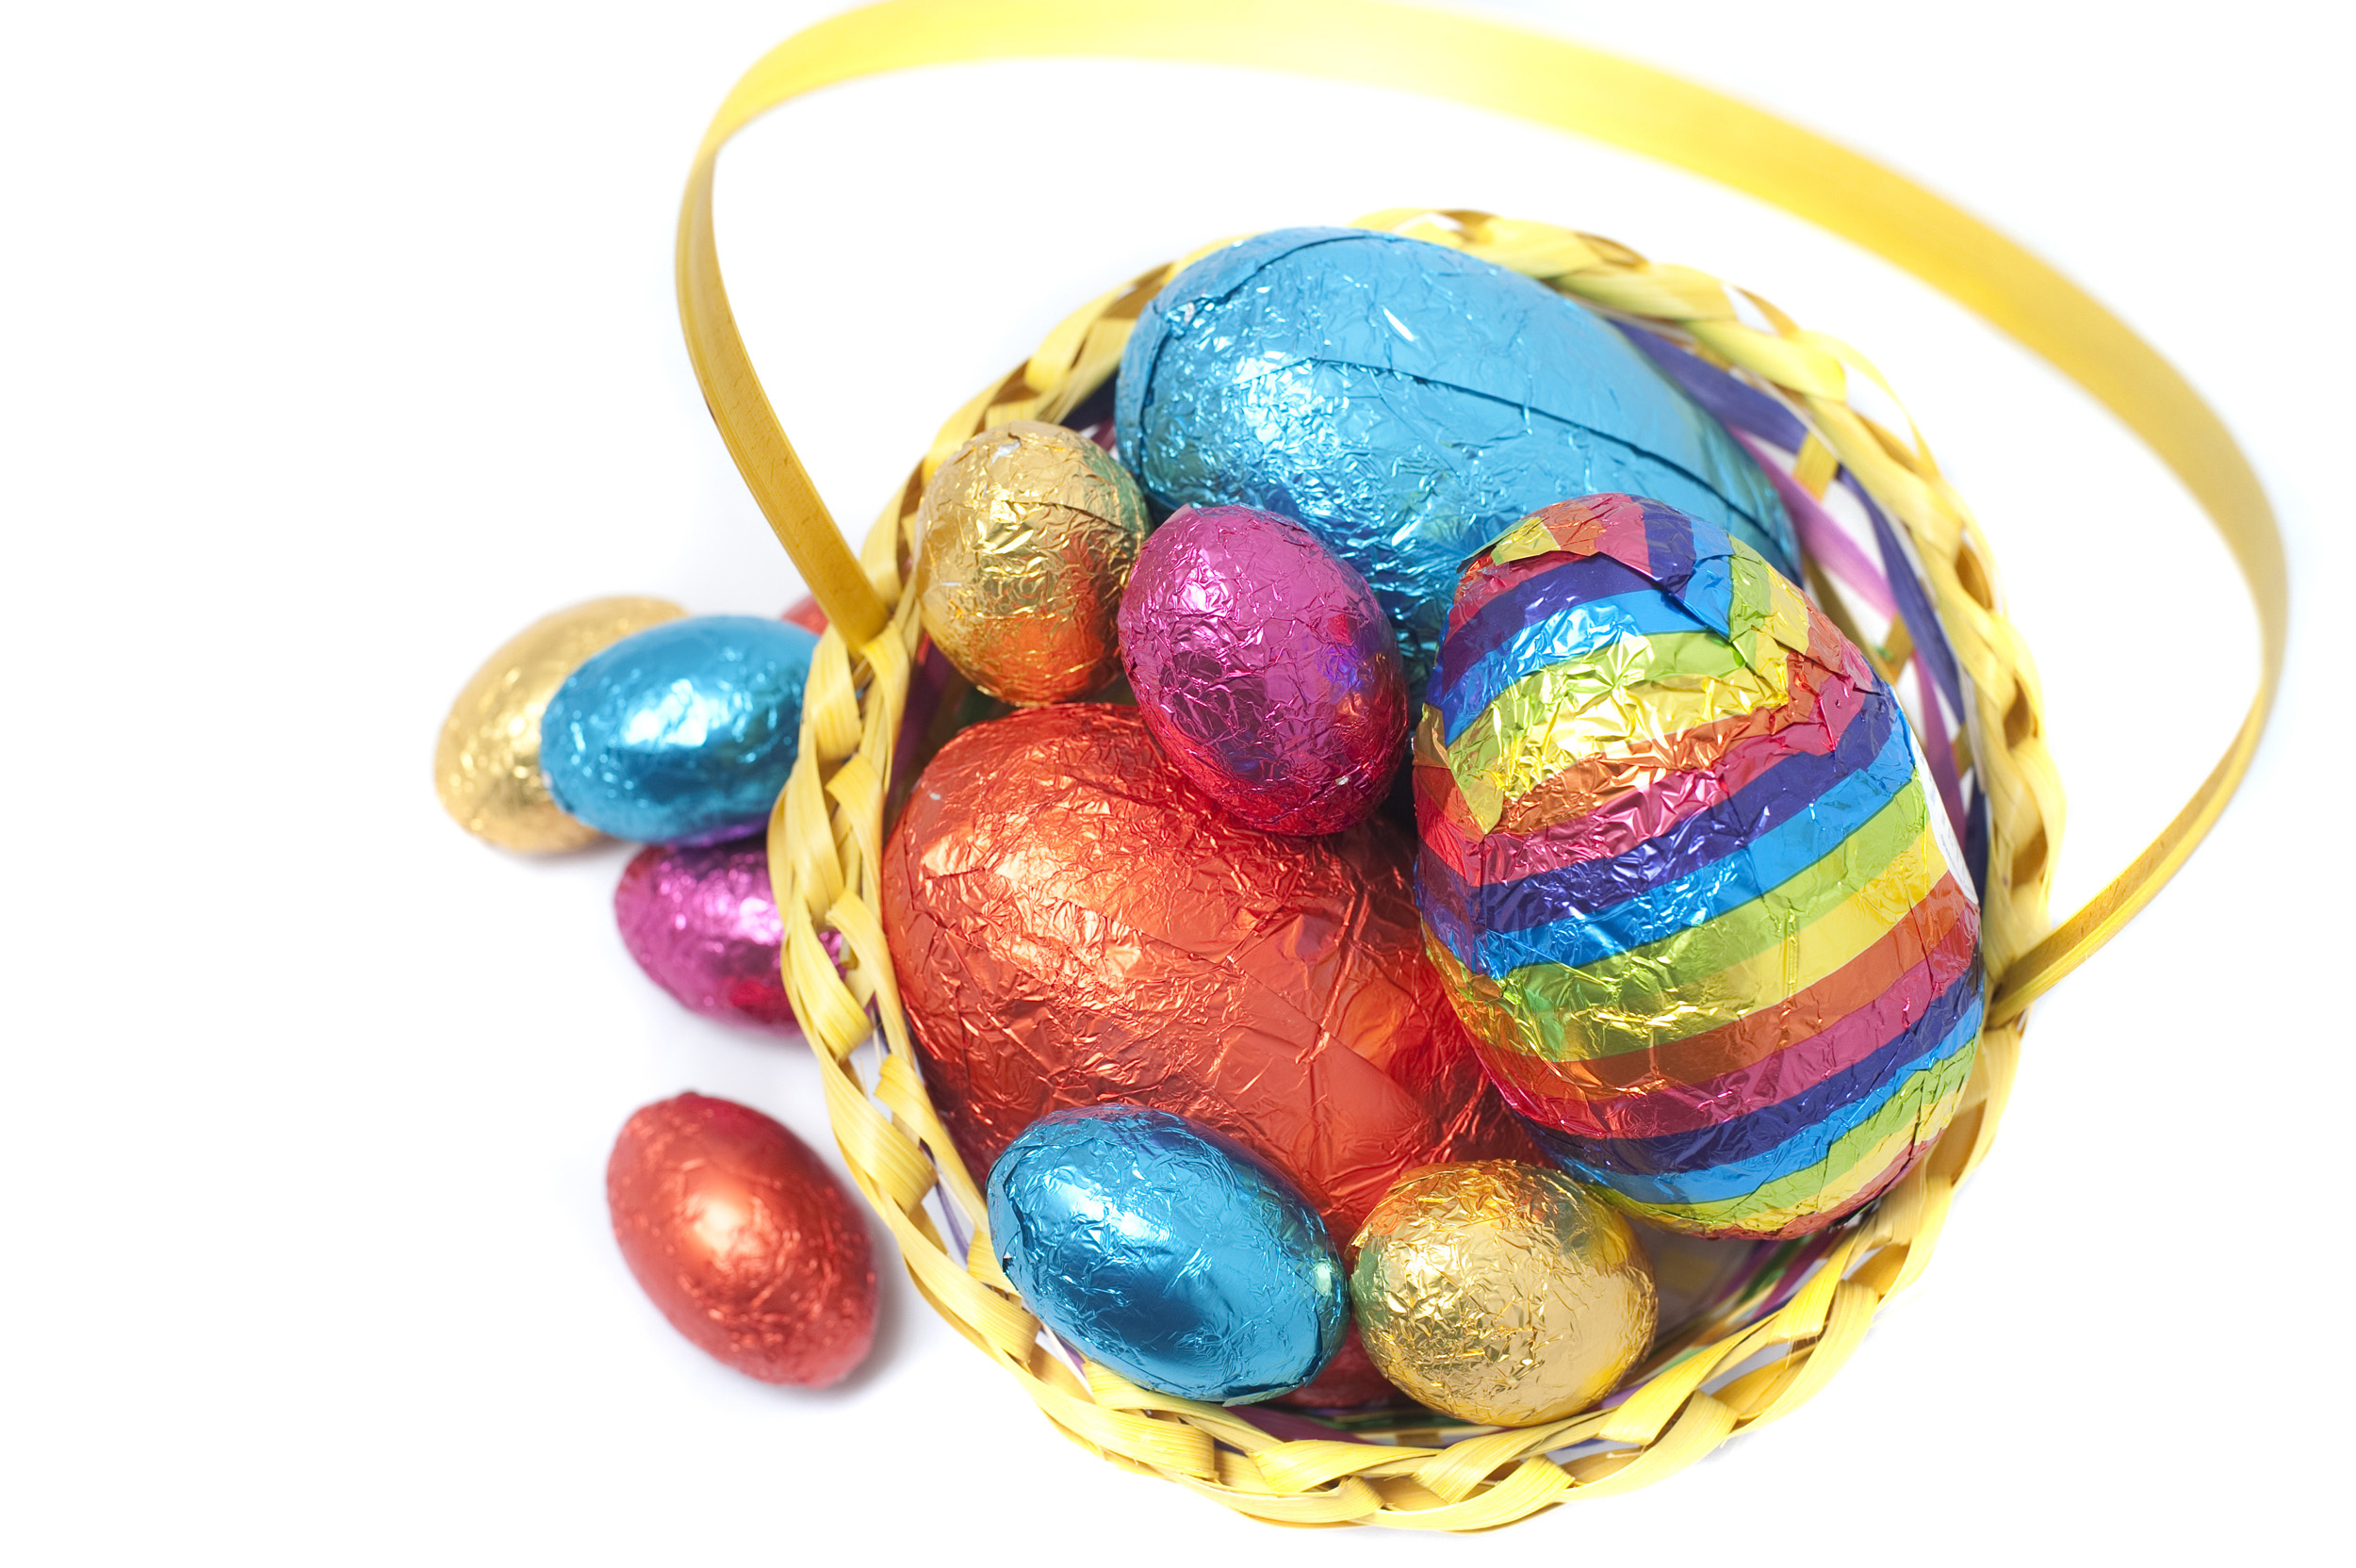 colored_easter_eggs.jpg - High angle view of a decorative basket of different sized colored Easter Eggs in shiny foil wrapping